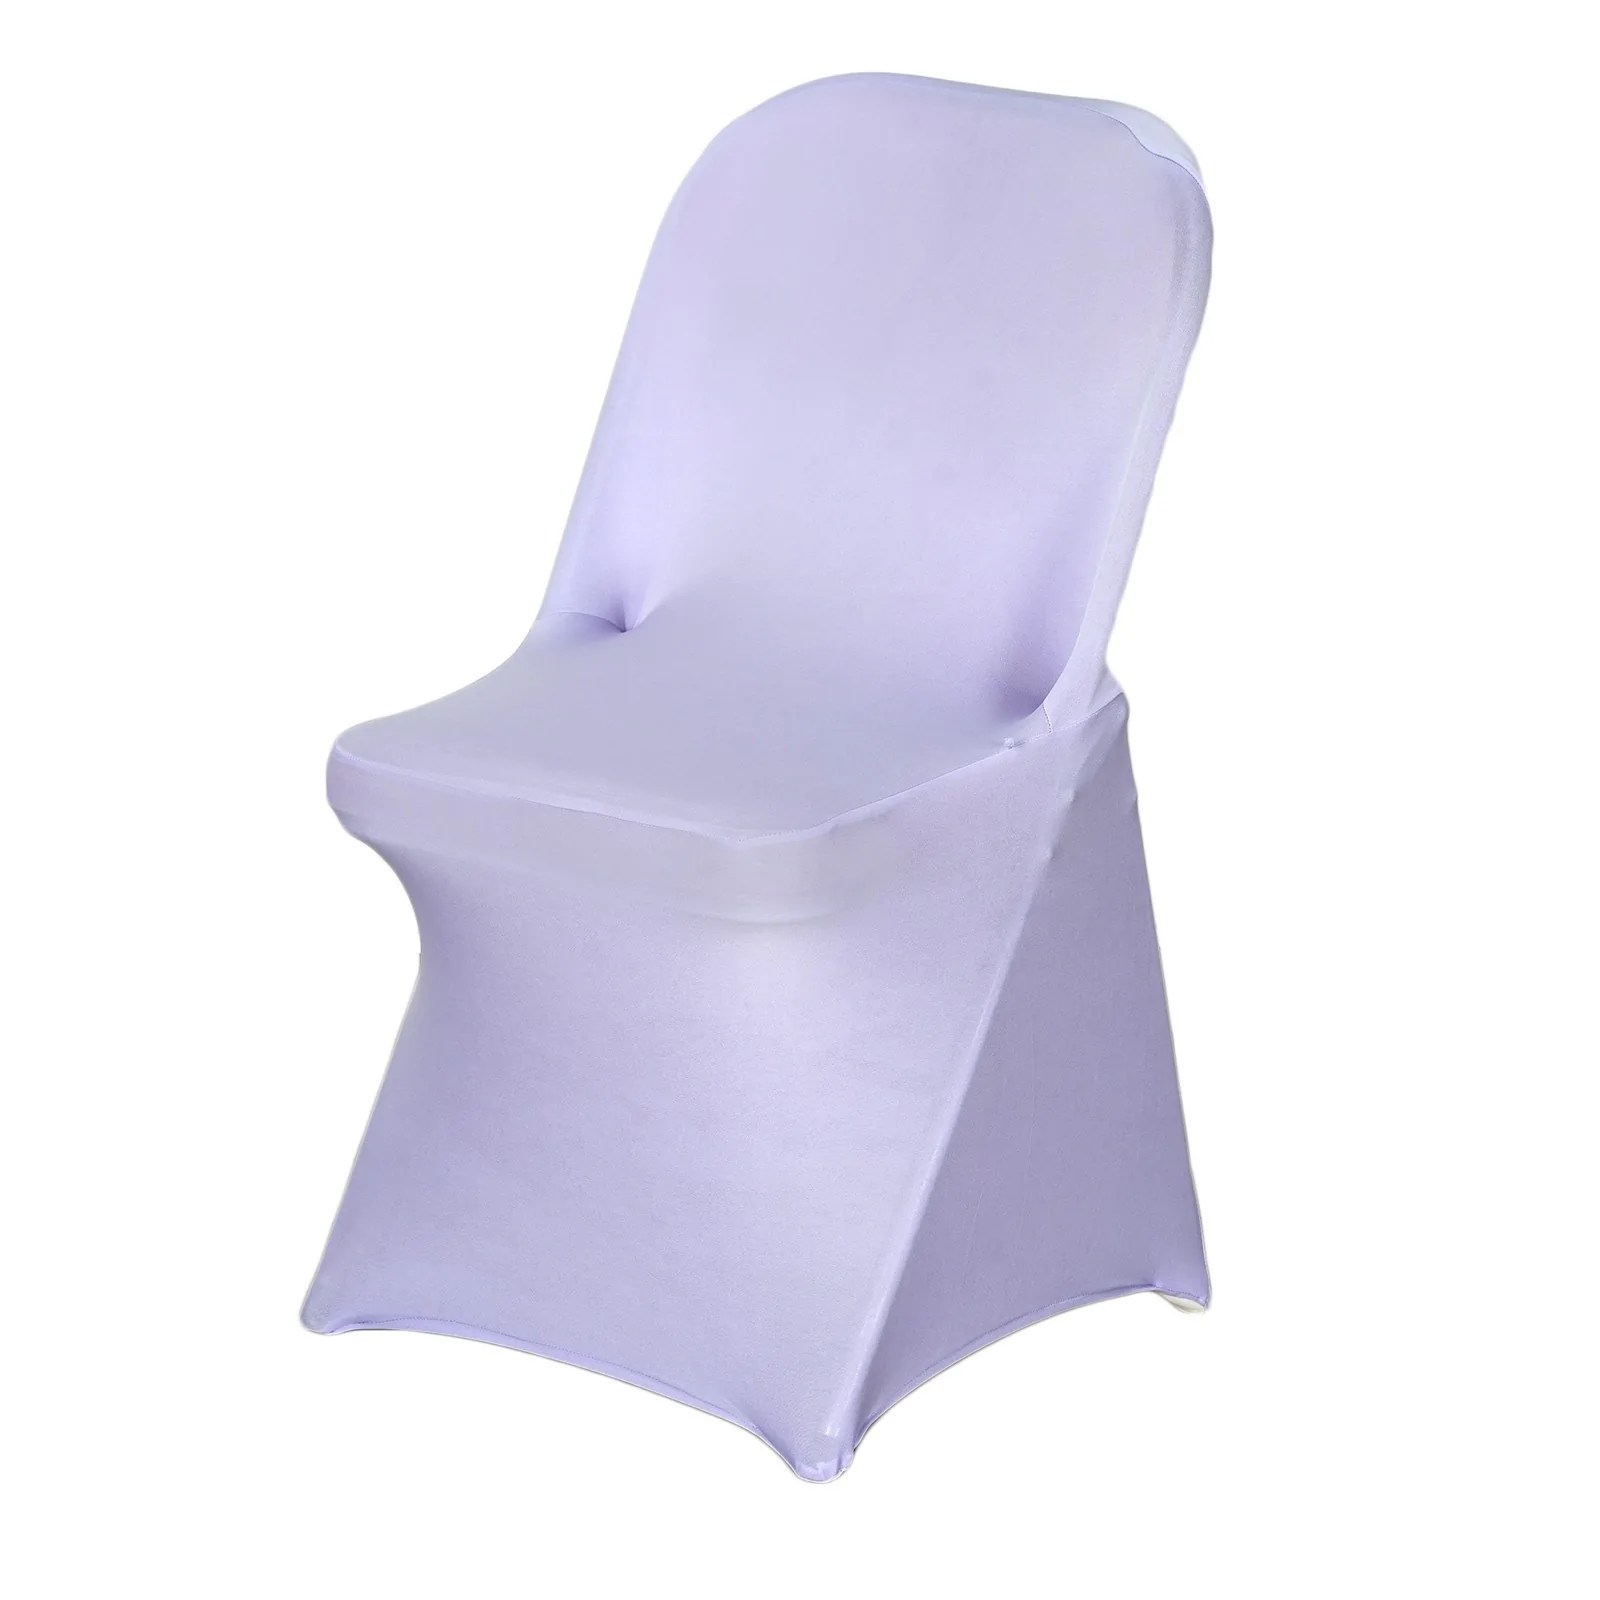 Lavender Chair Chair Covers For Folding Chair Spandex Lavender